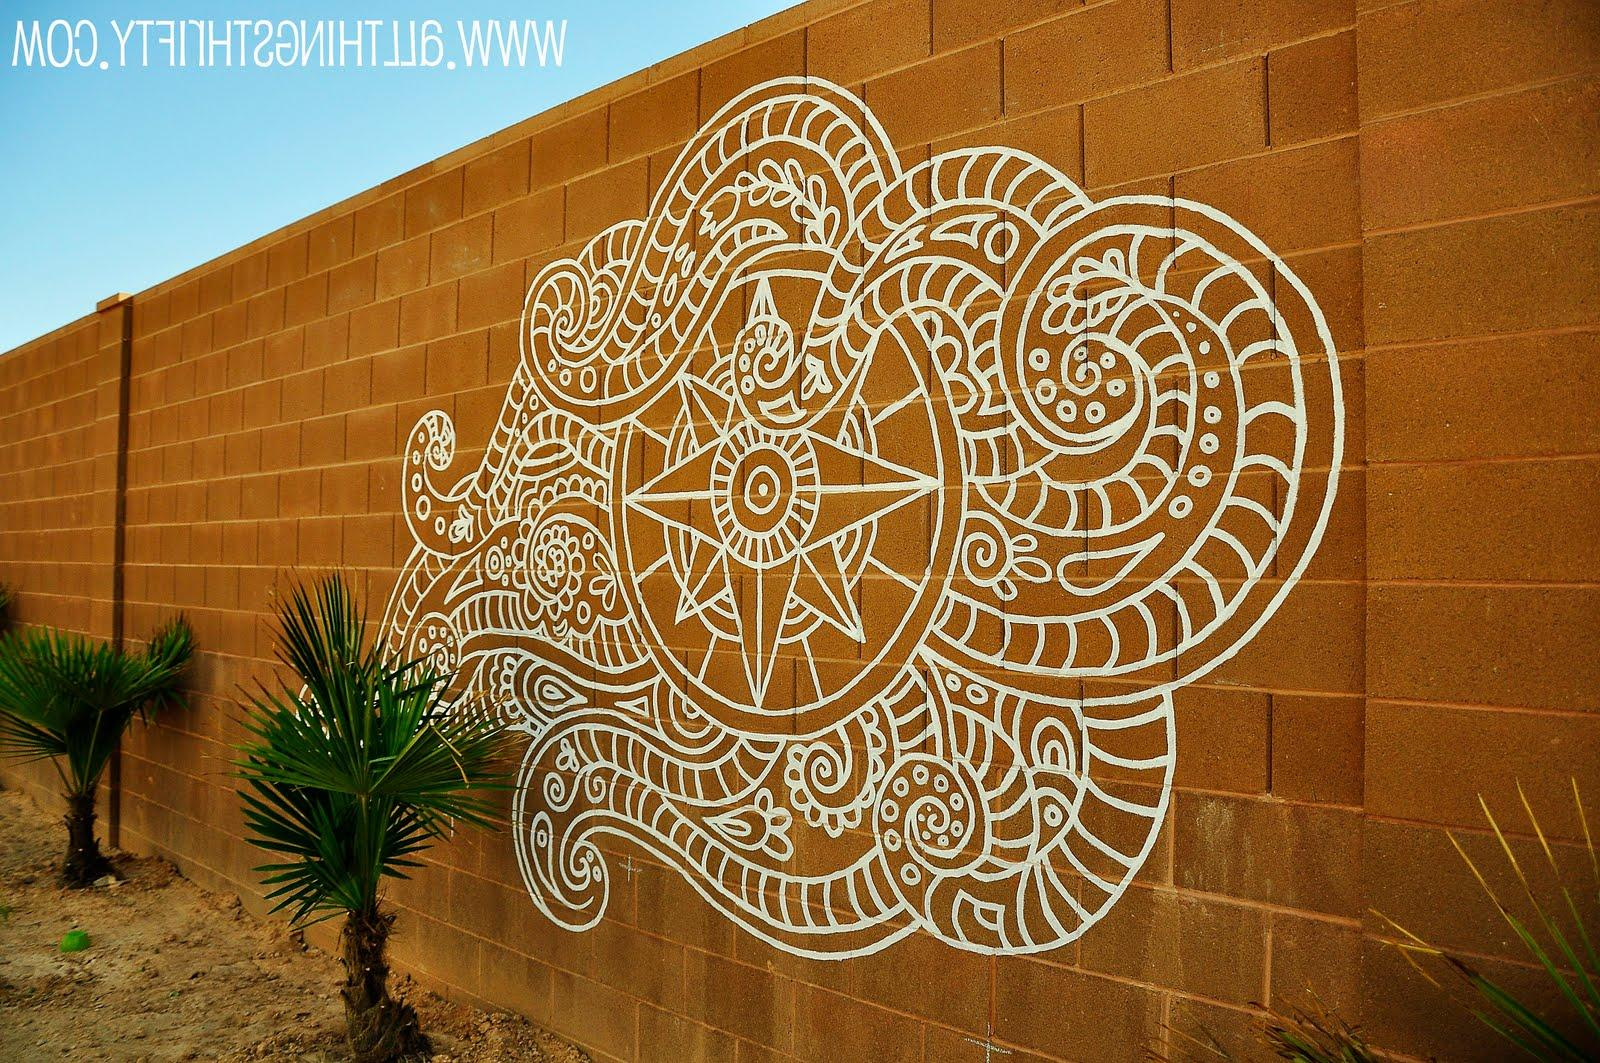 Backyard Wall Mural